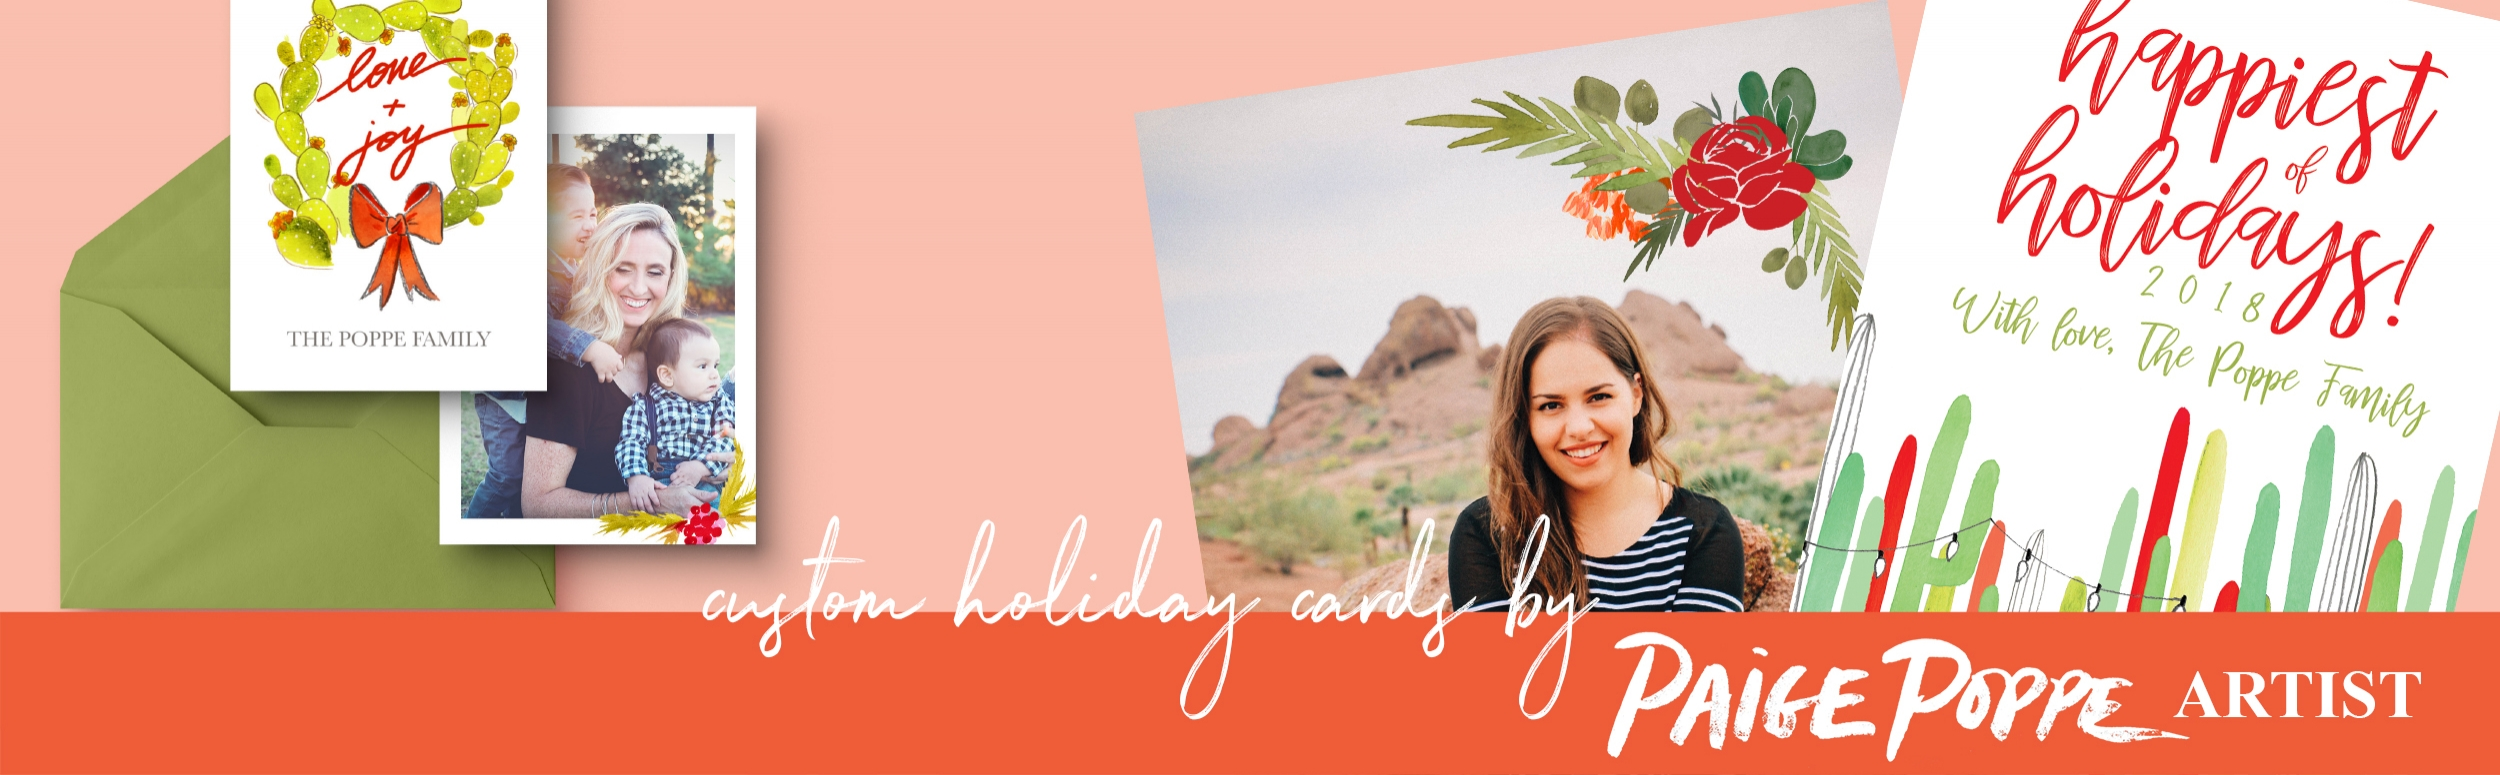 holiday cards banner.jpg